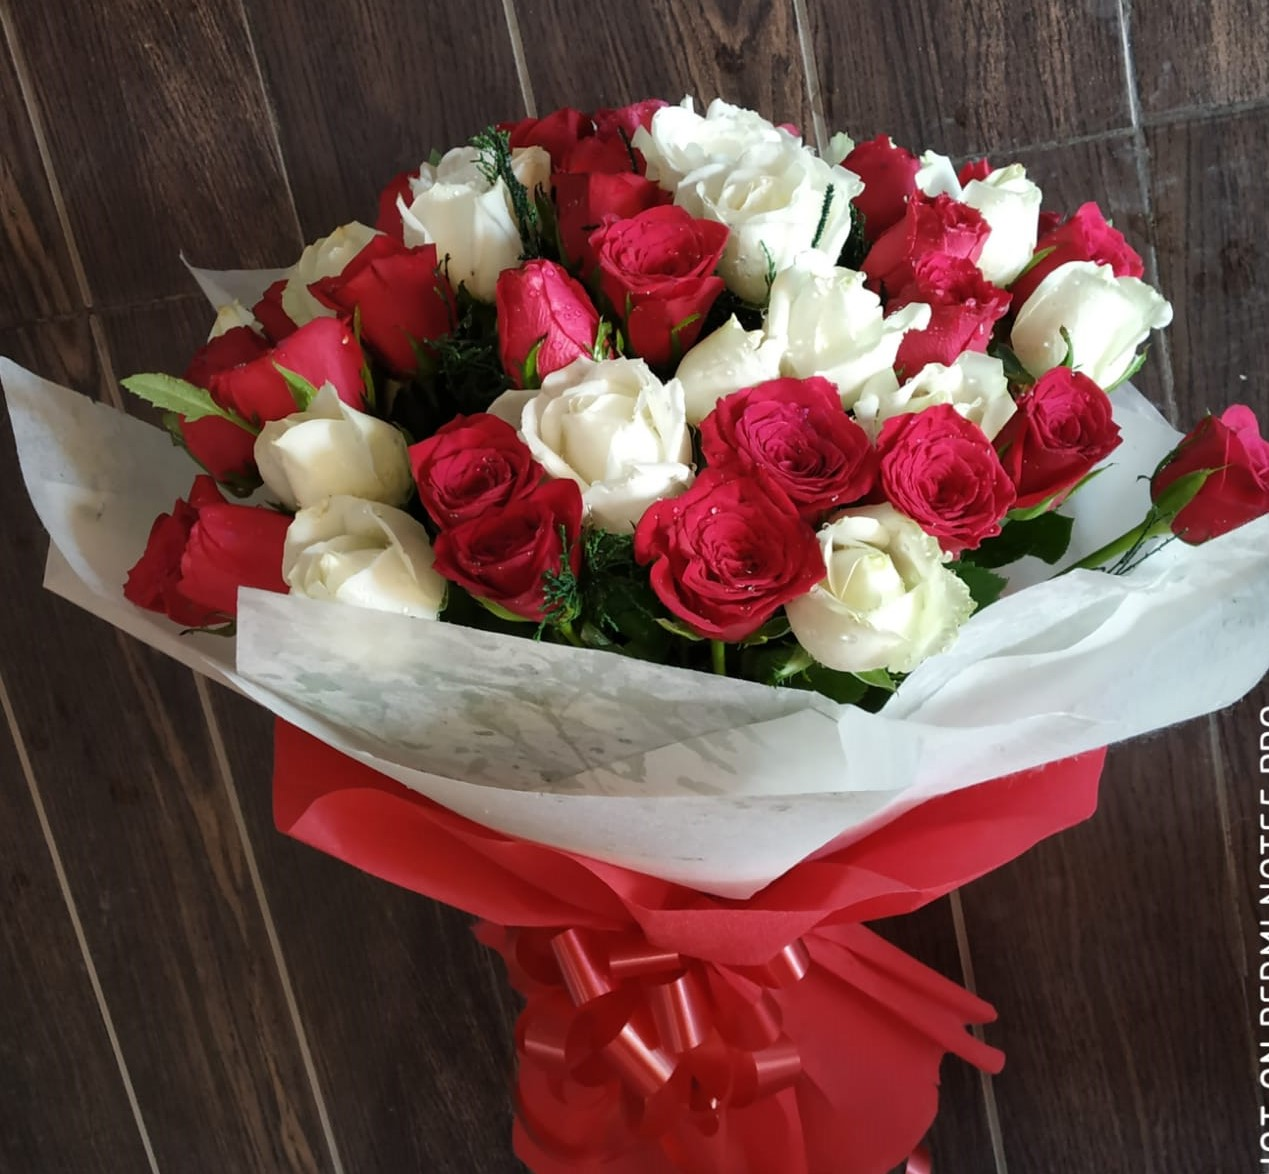 send flower Vikas puri DelhiRed & White Roses in Duble Layer Packing